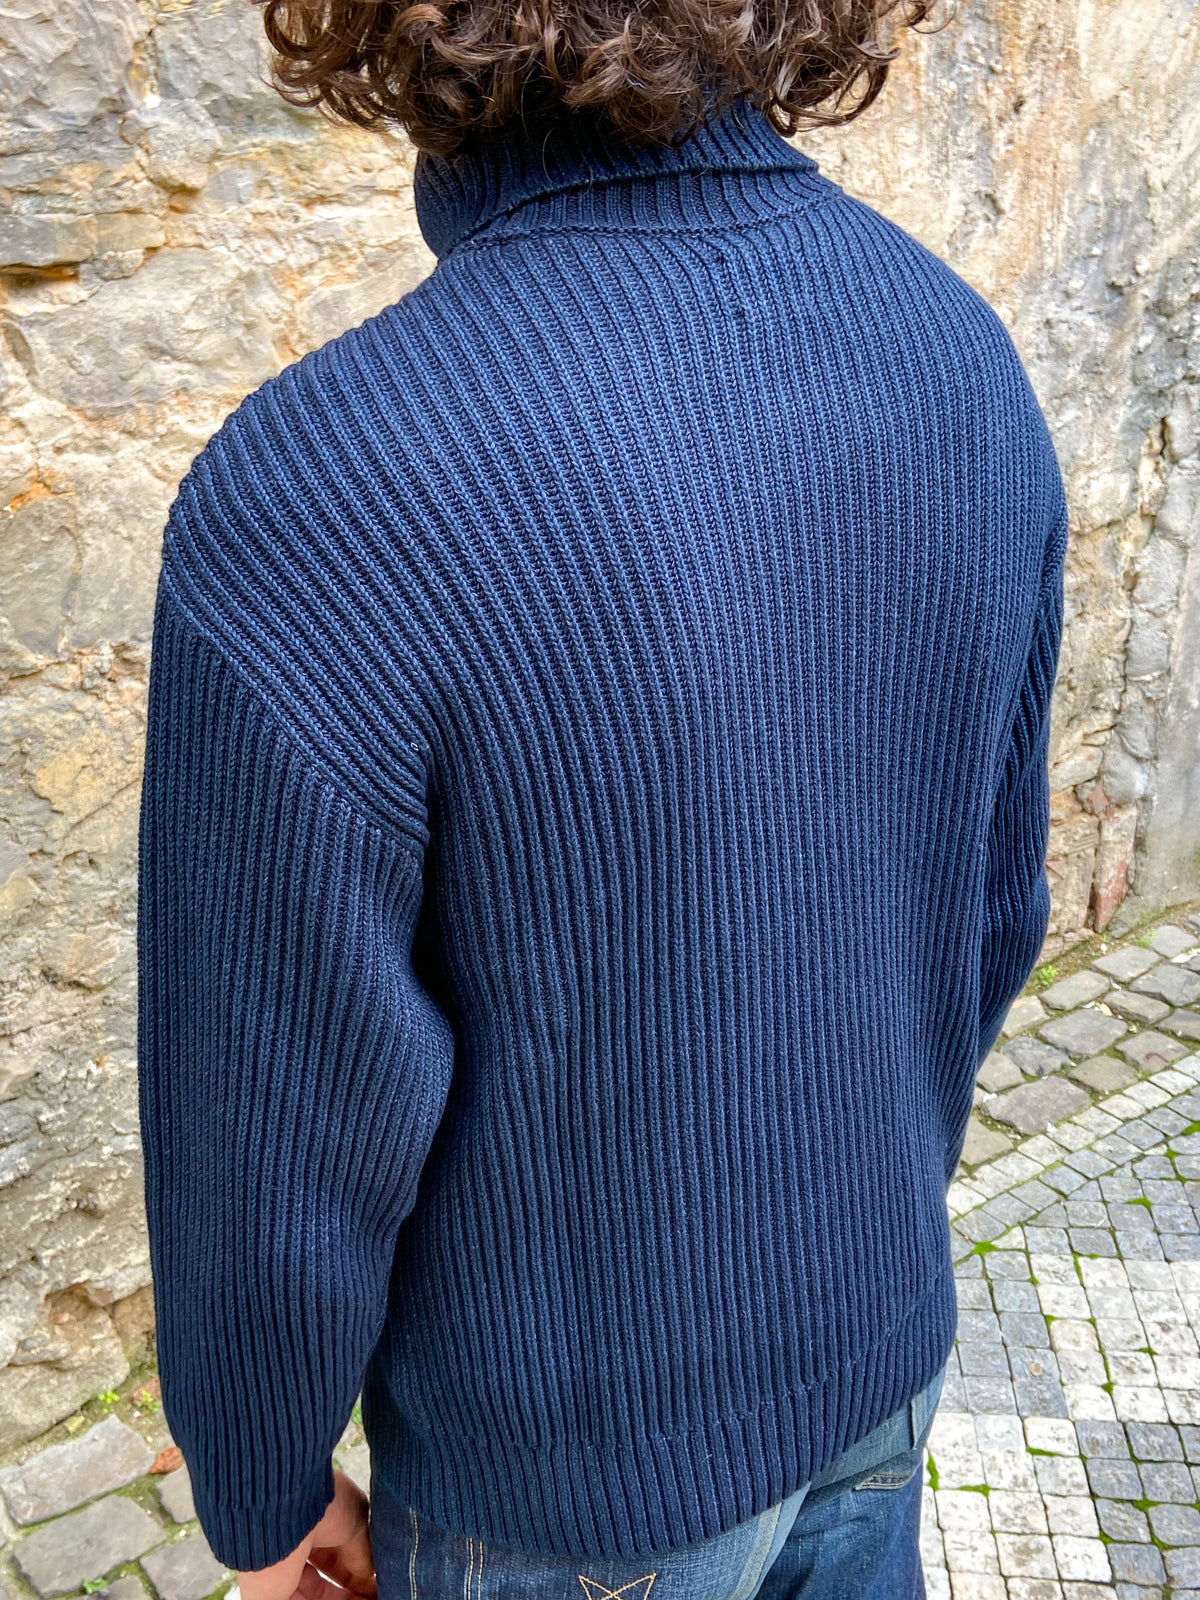 Nudie Jeans Frank Indigo Roll Neck